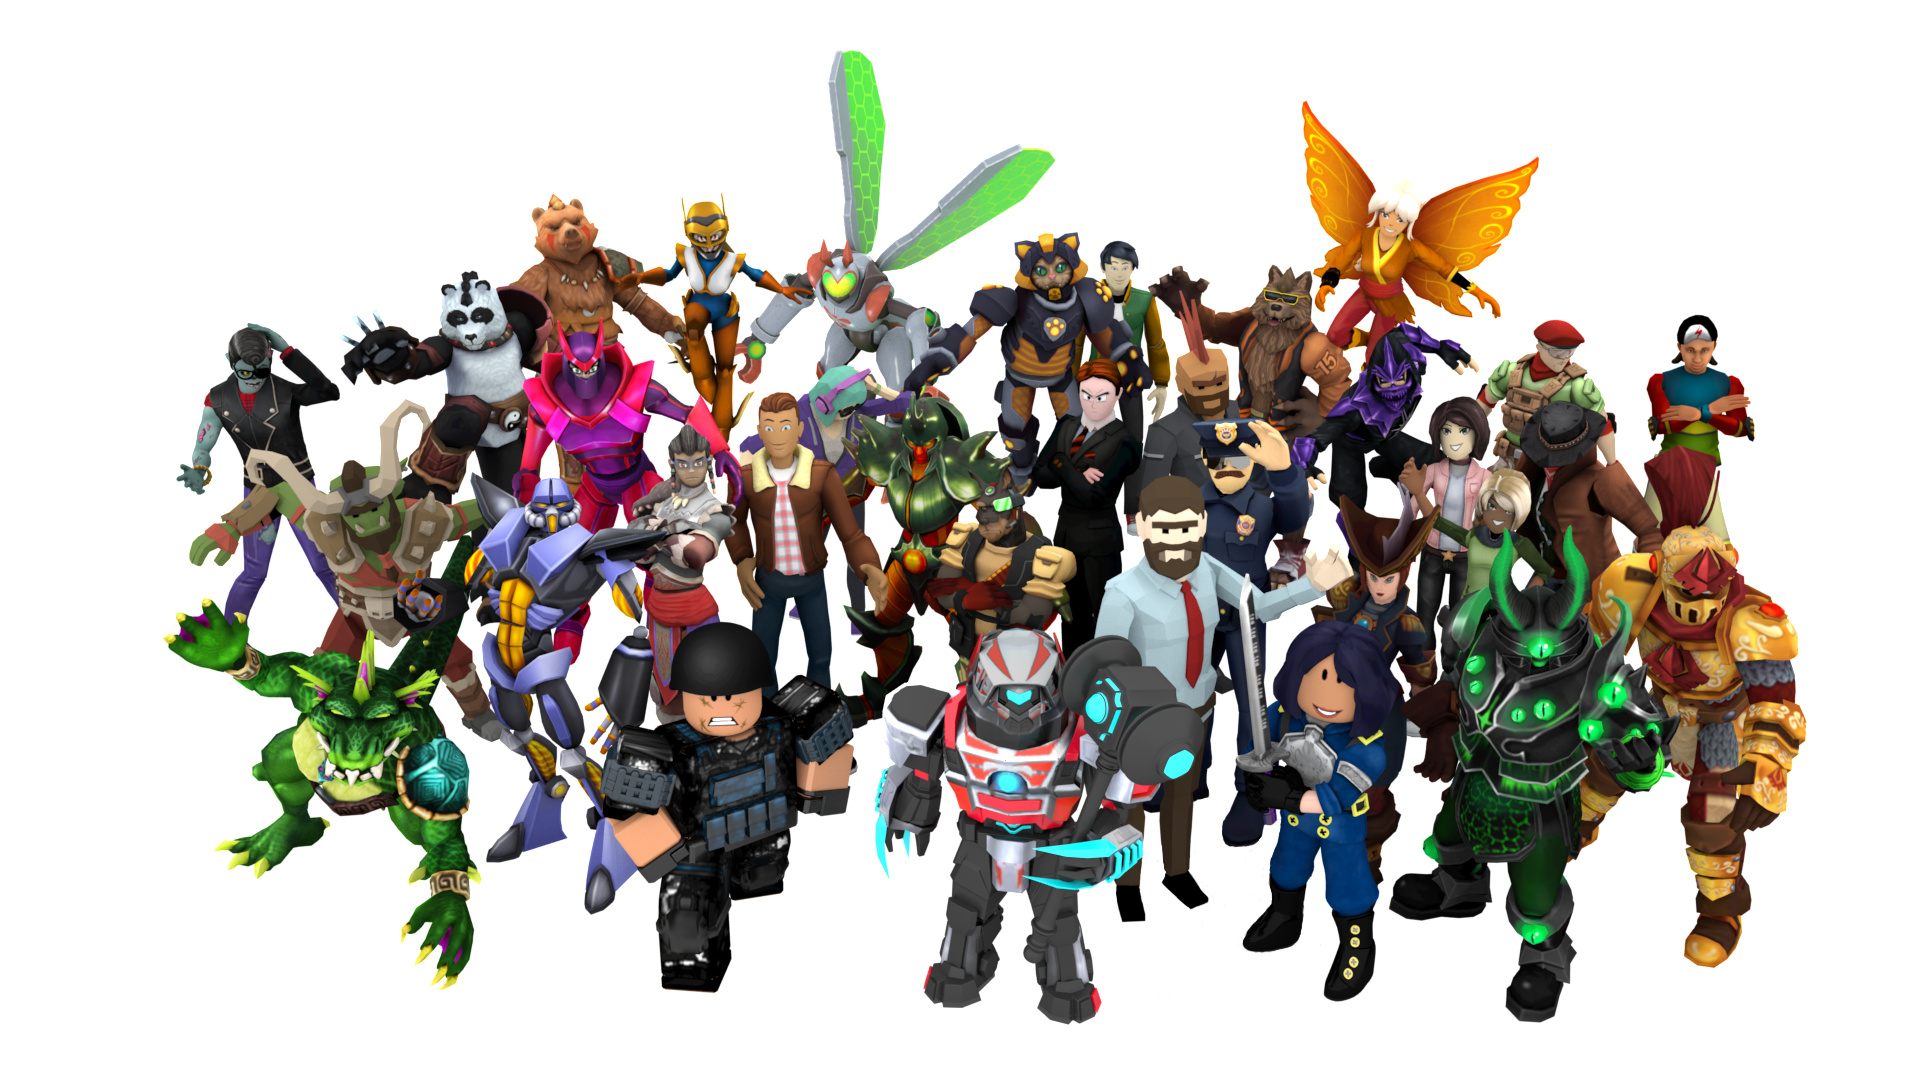 Announcing Unlocked Avatar Scaling Expanding The Roblox Universe